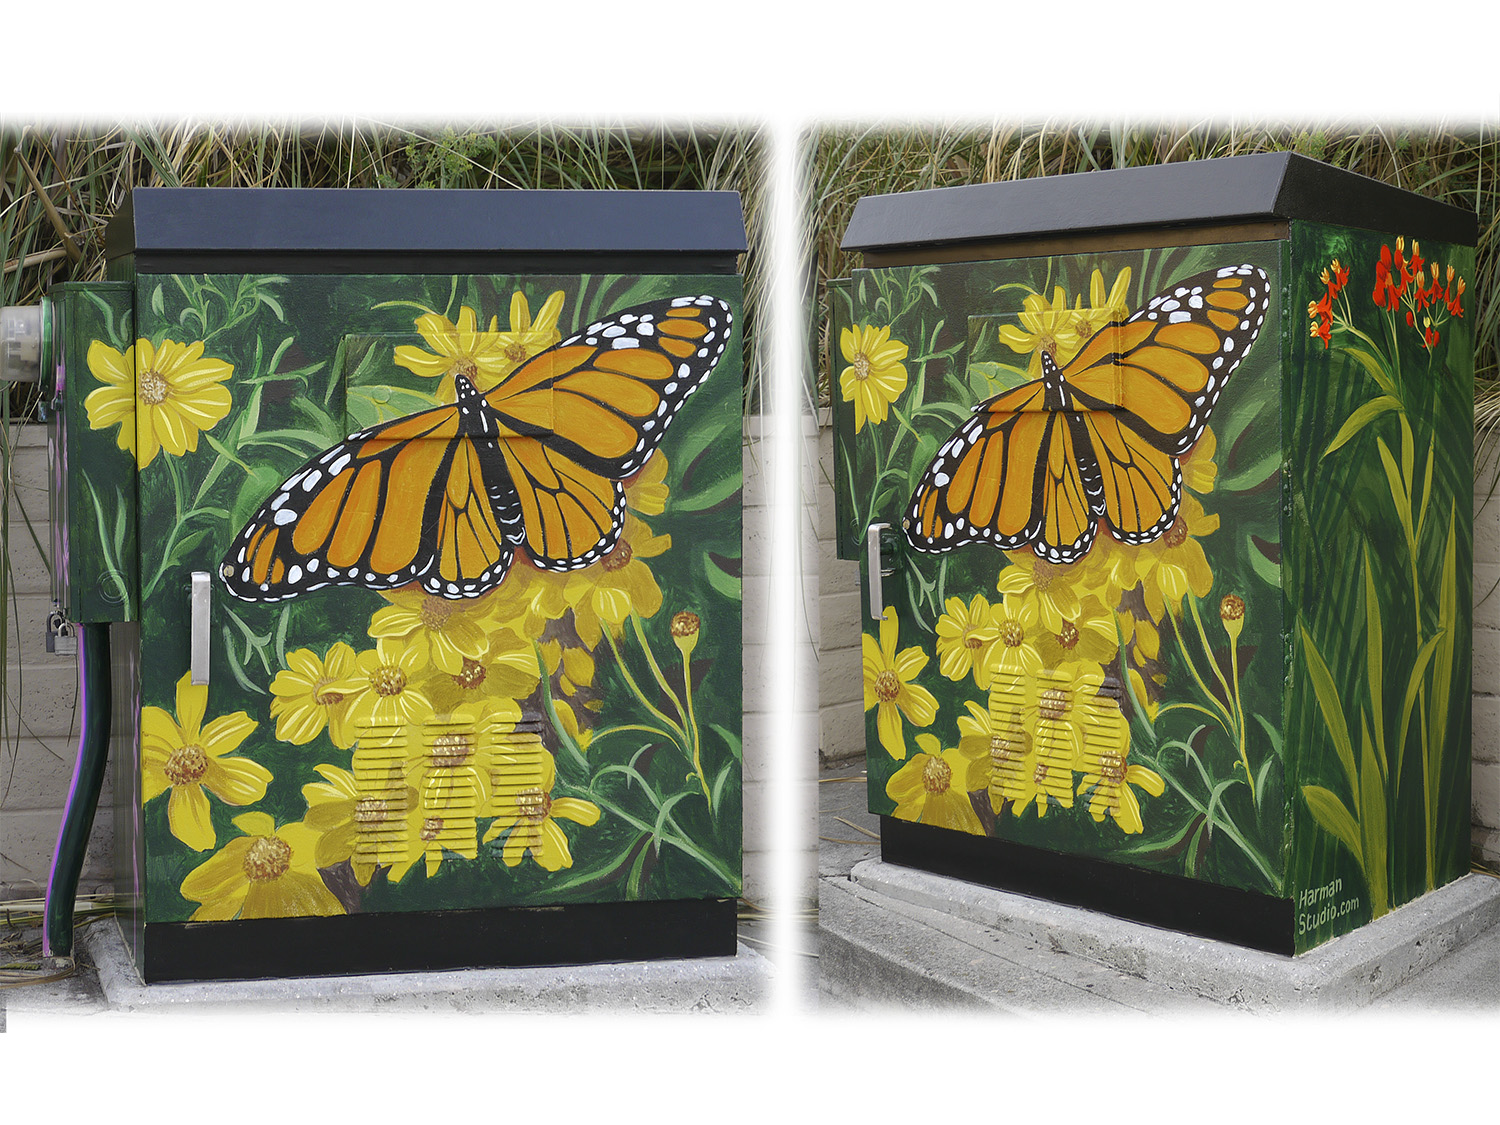 Monarch butterflies pause in a special location in Santa Cruz on their migratory flight to Mexico.